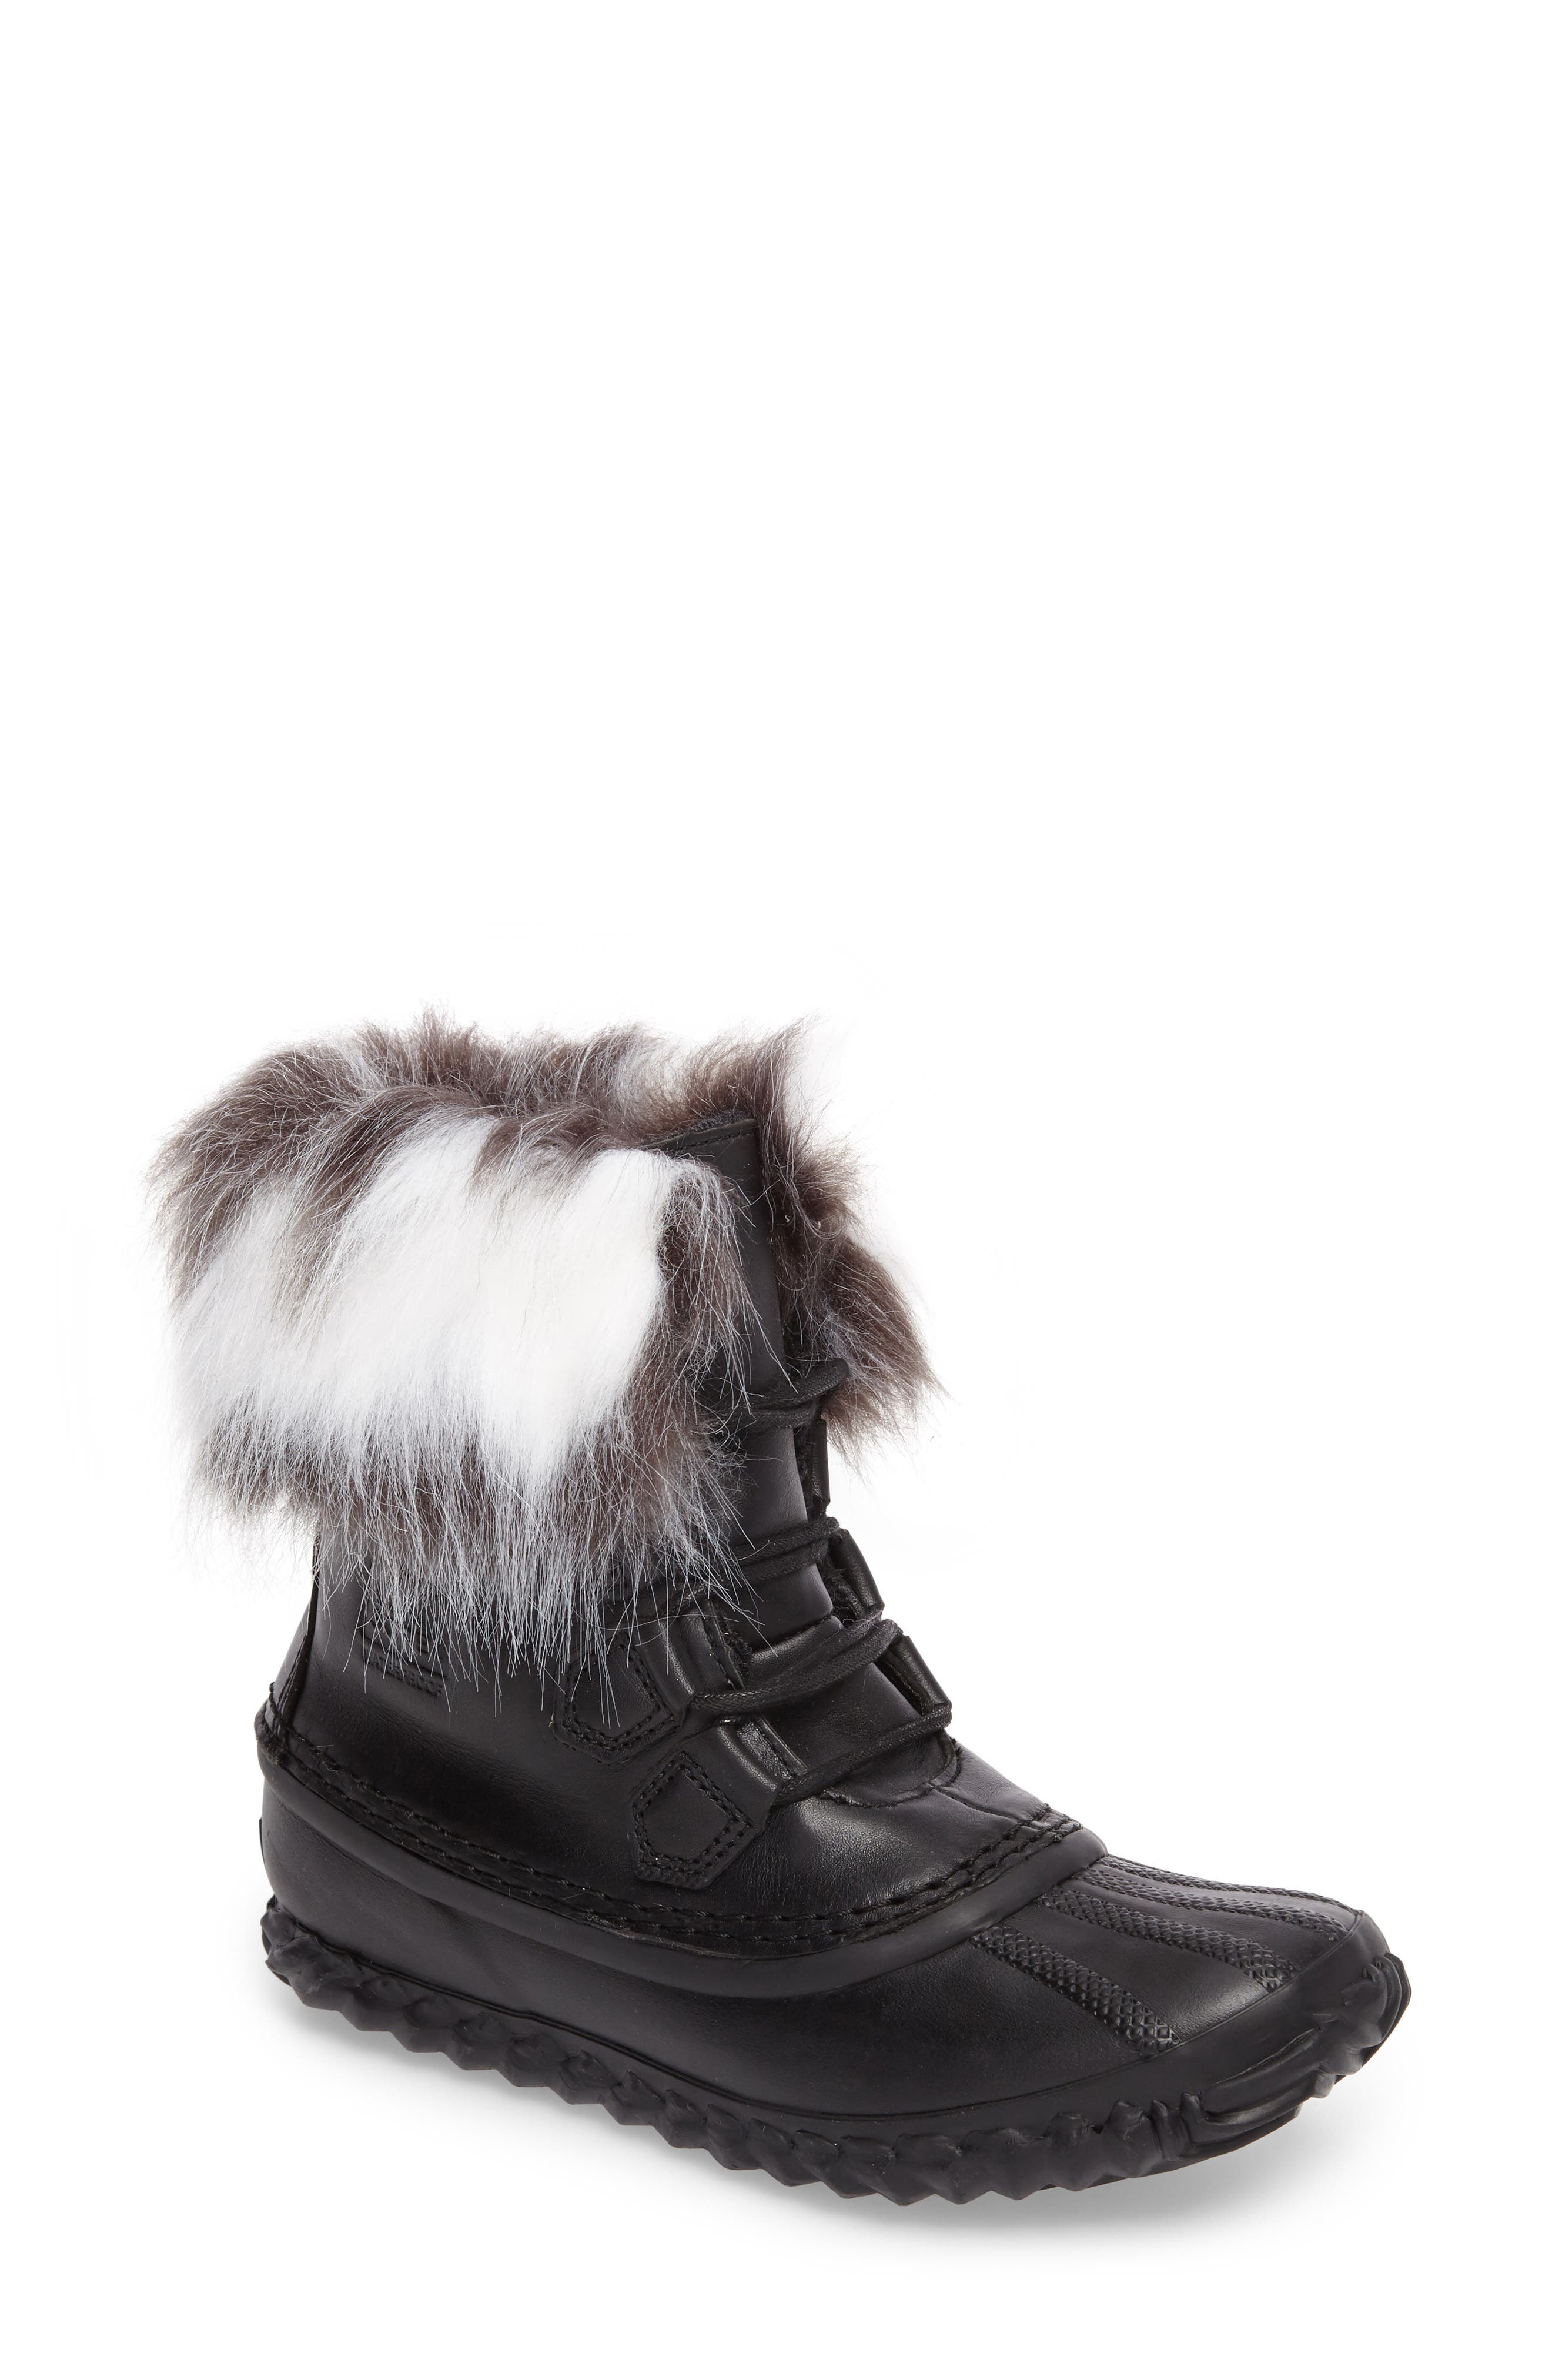 Out 'N About Waterproof Luxe Bootie,                             Main thumbnail 1, color,                             Black/ Sea Salt